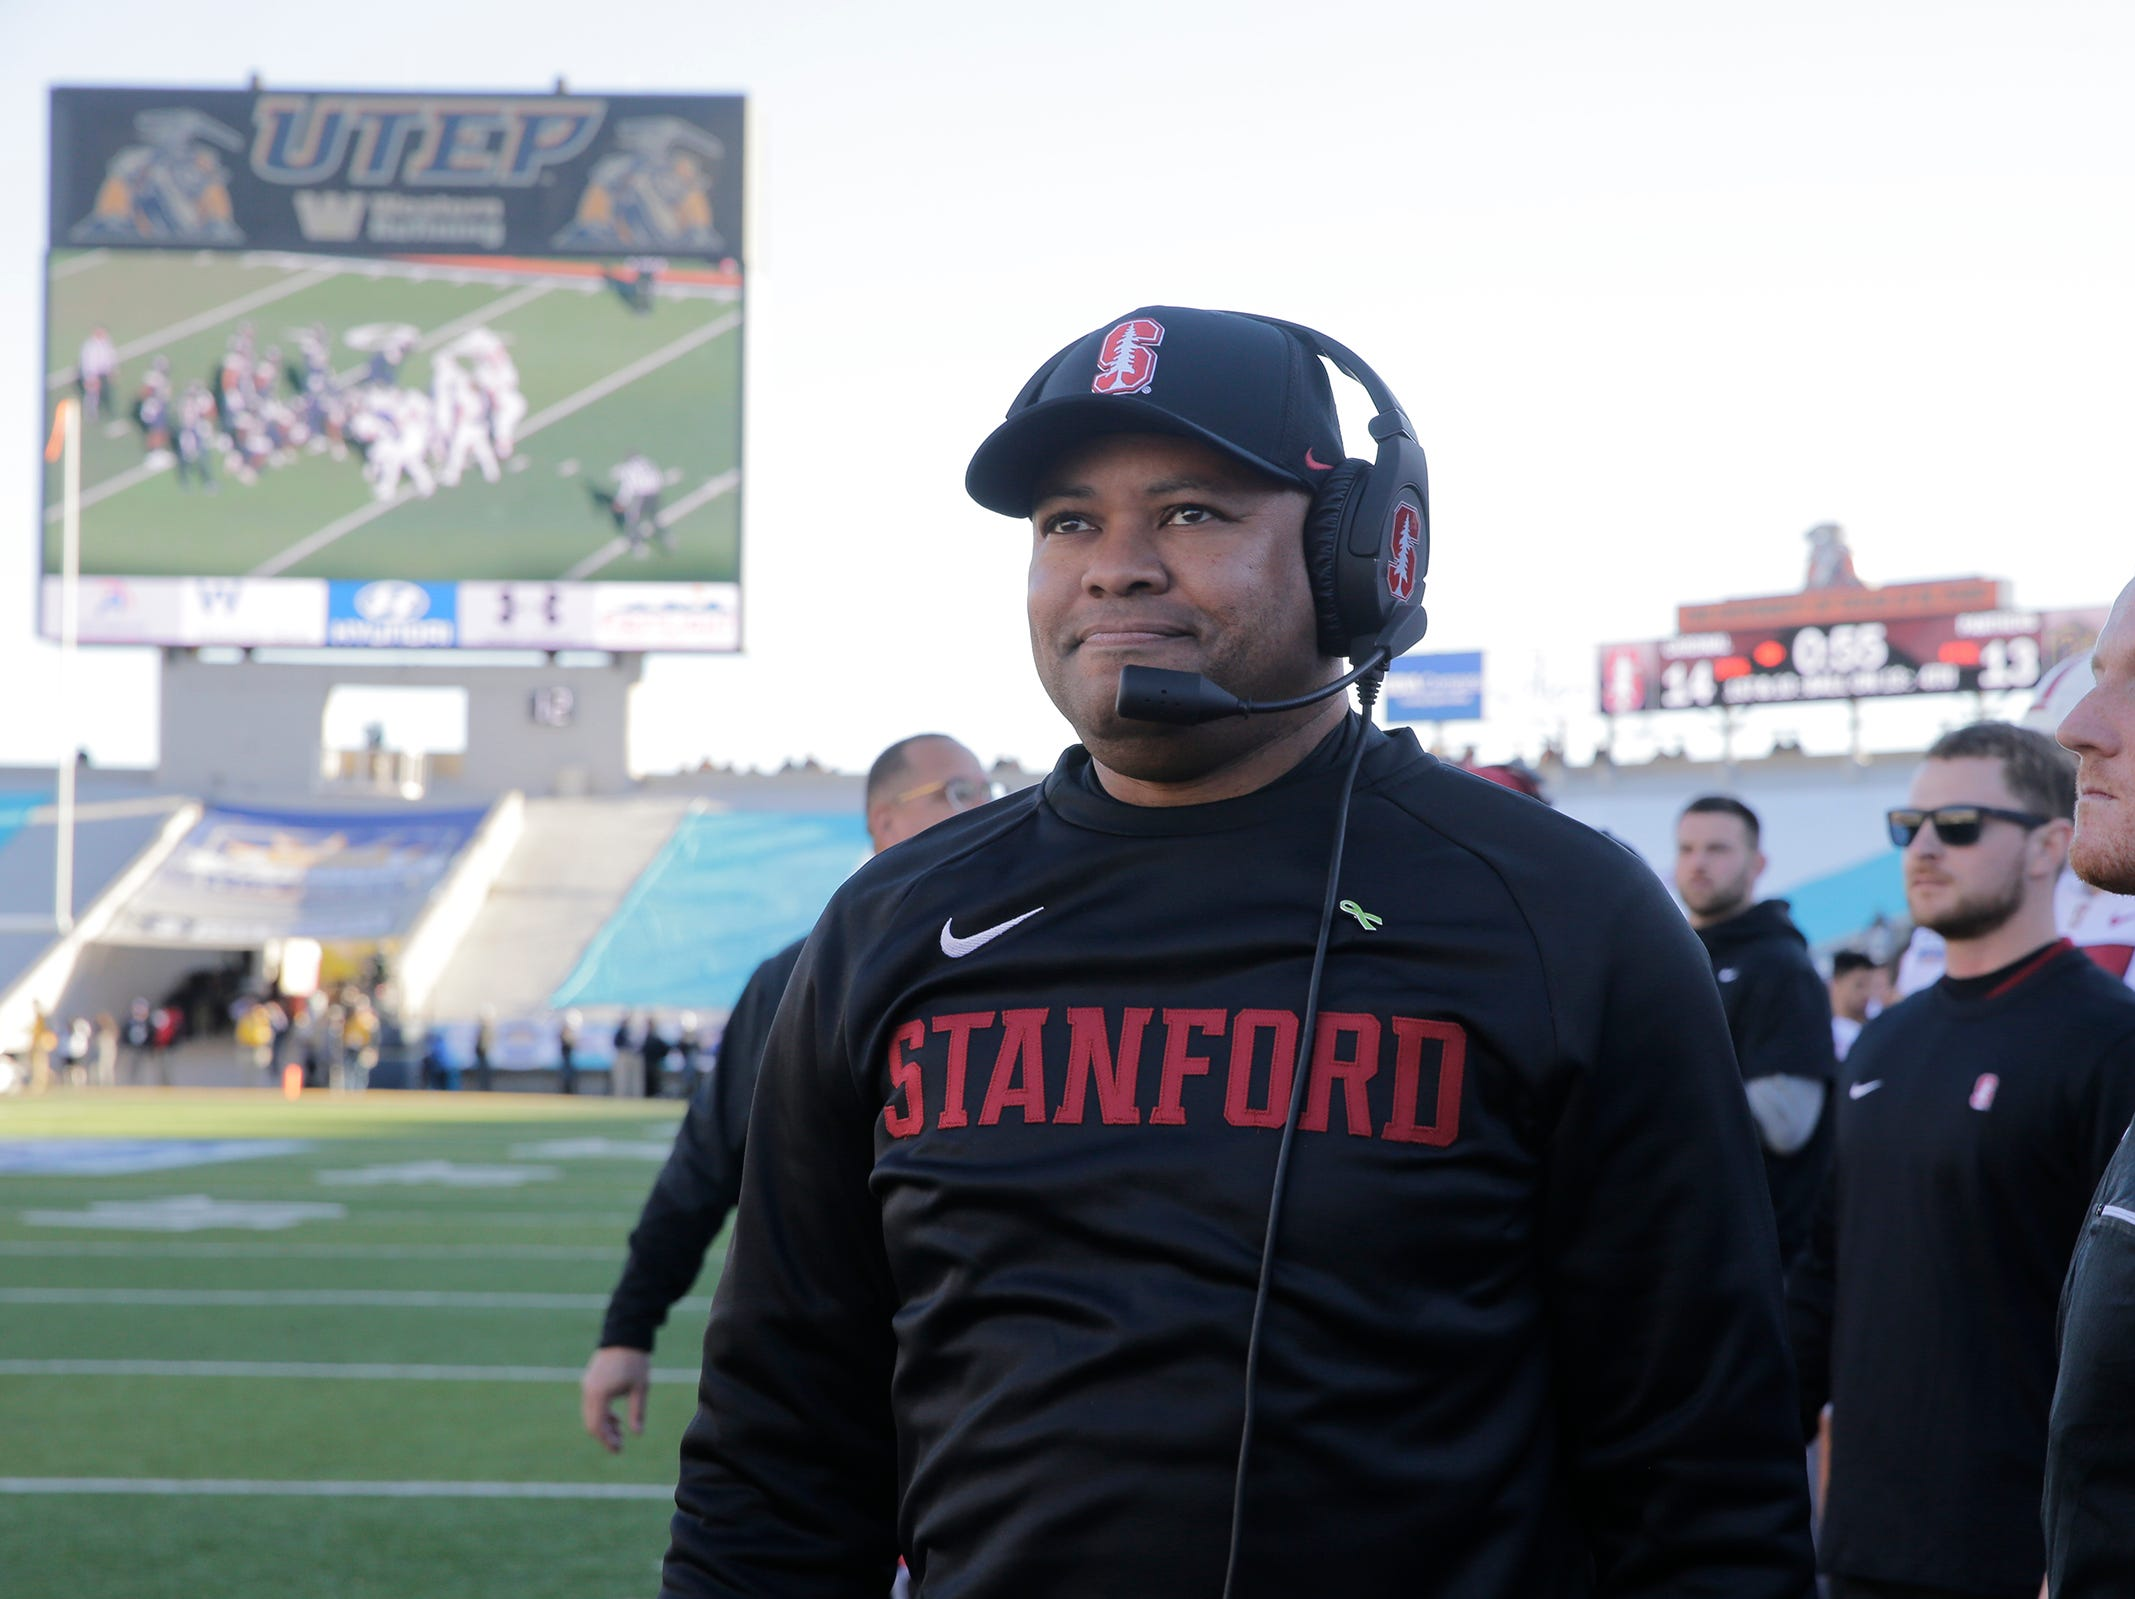 Stanford head coach David Shaw looks up to the game clock as the final seconds click off and his Cardinal team takes home the 85th Hyundai Sun Bowl Championship tropy after a 14-13 win.